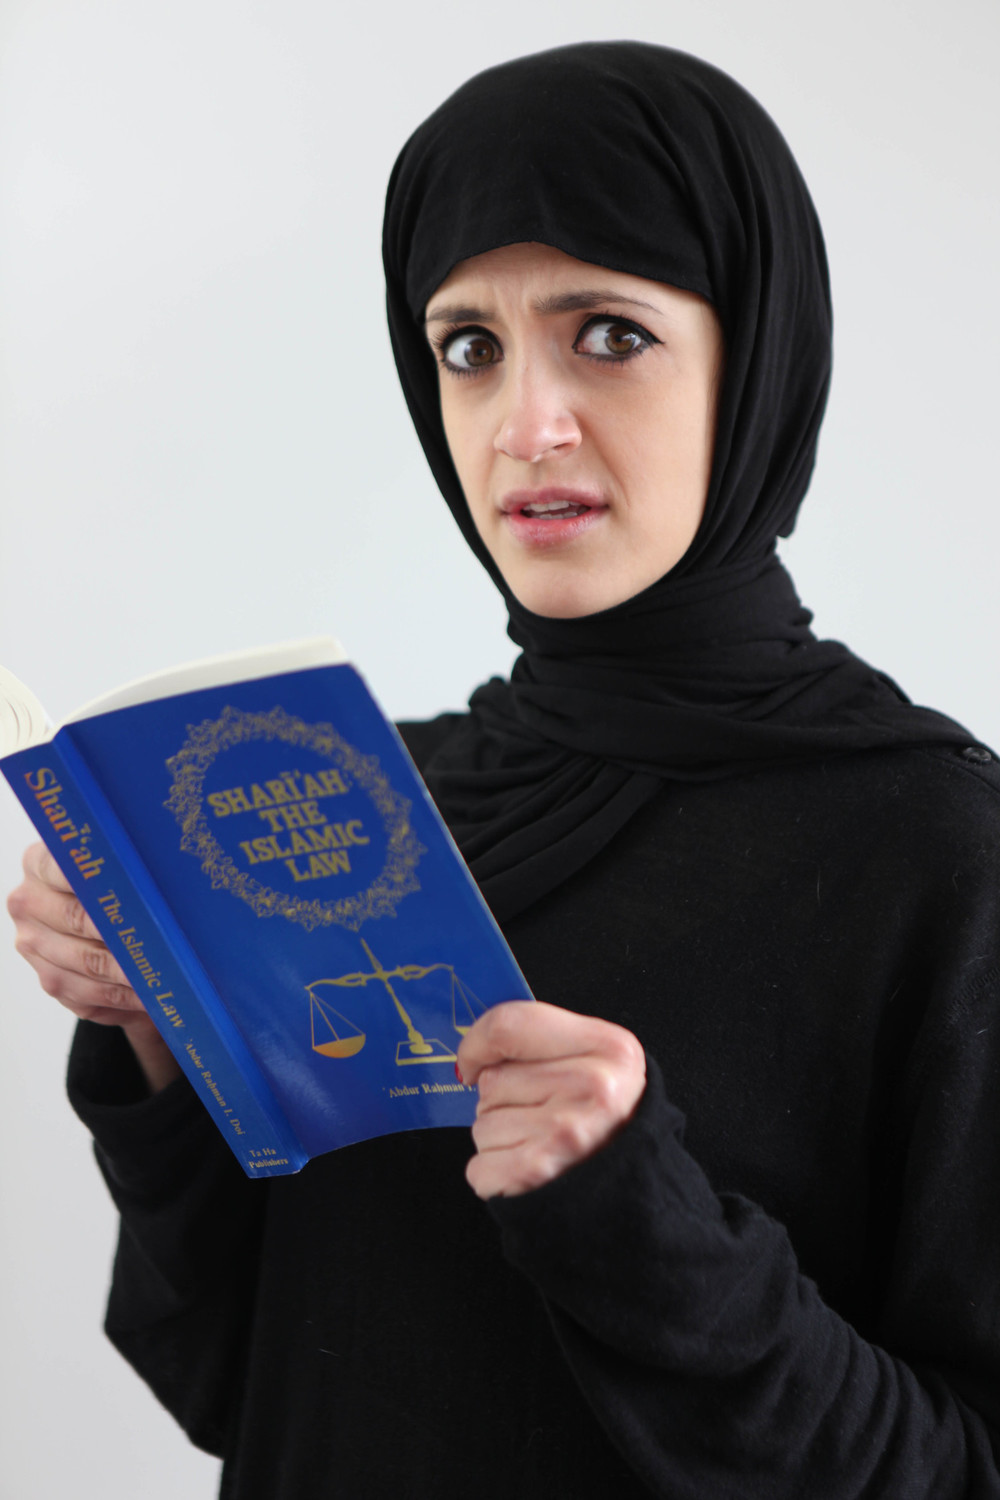 Sharia Law The Second